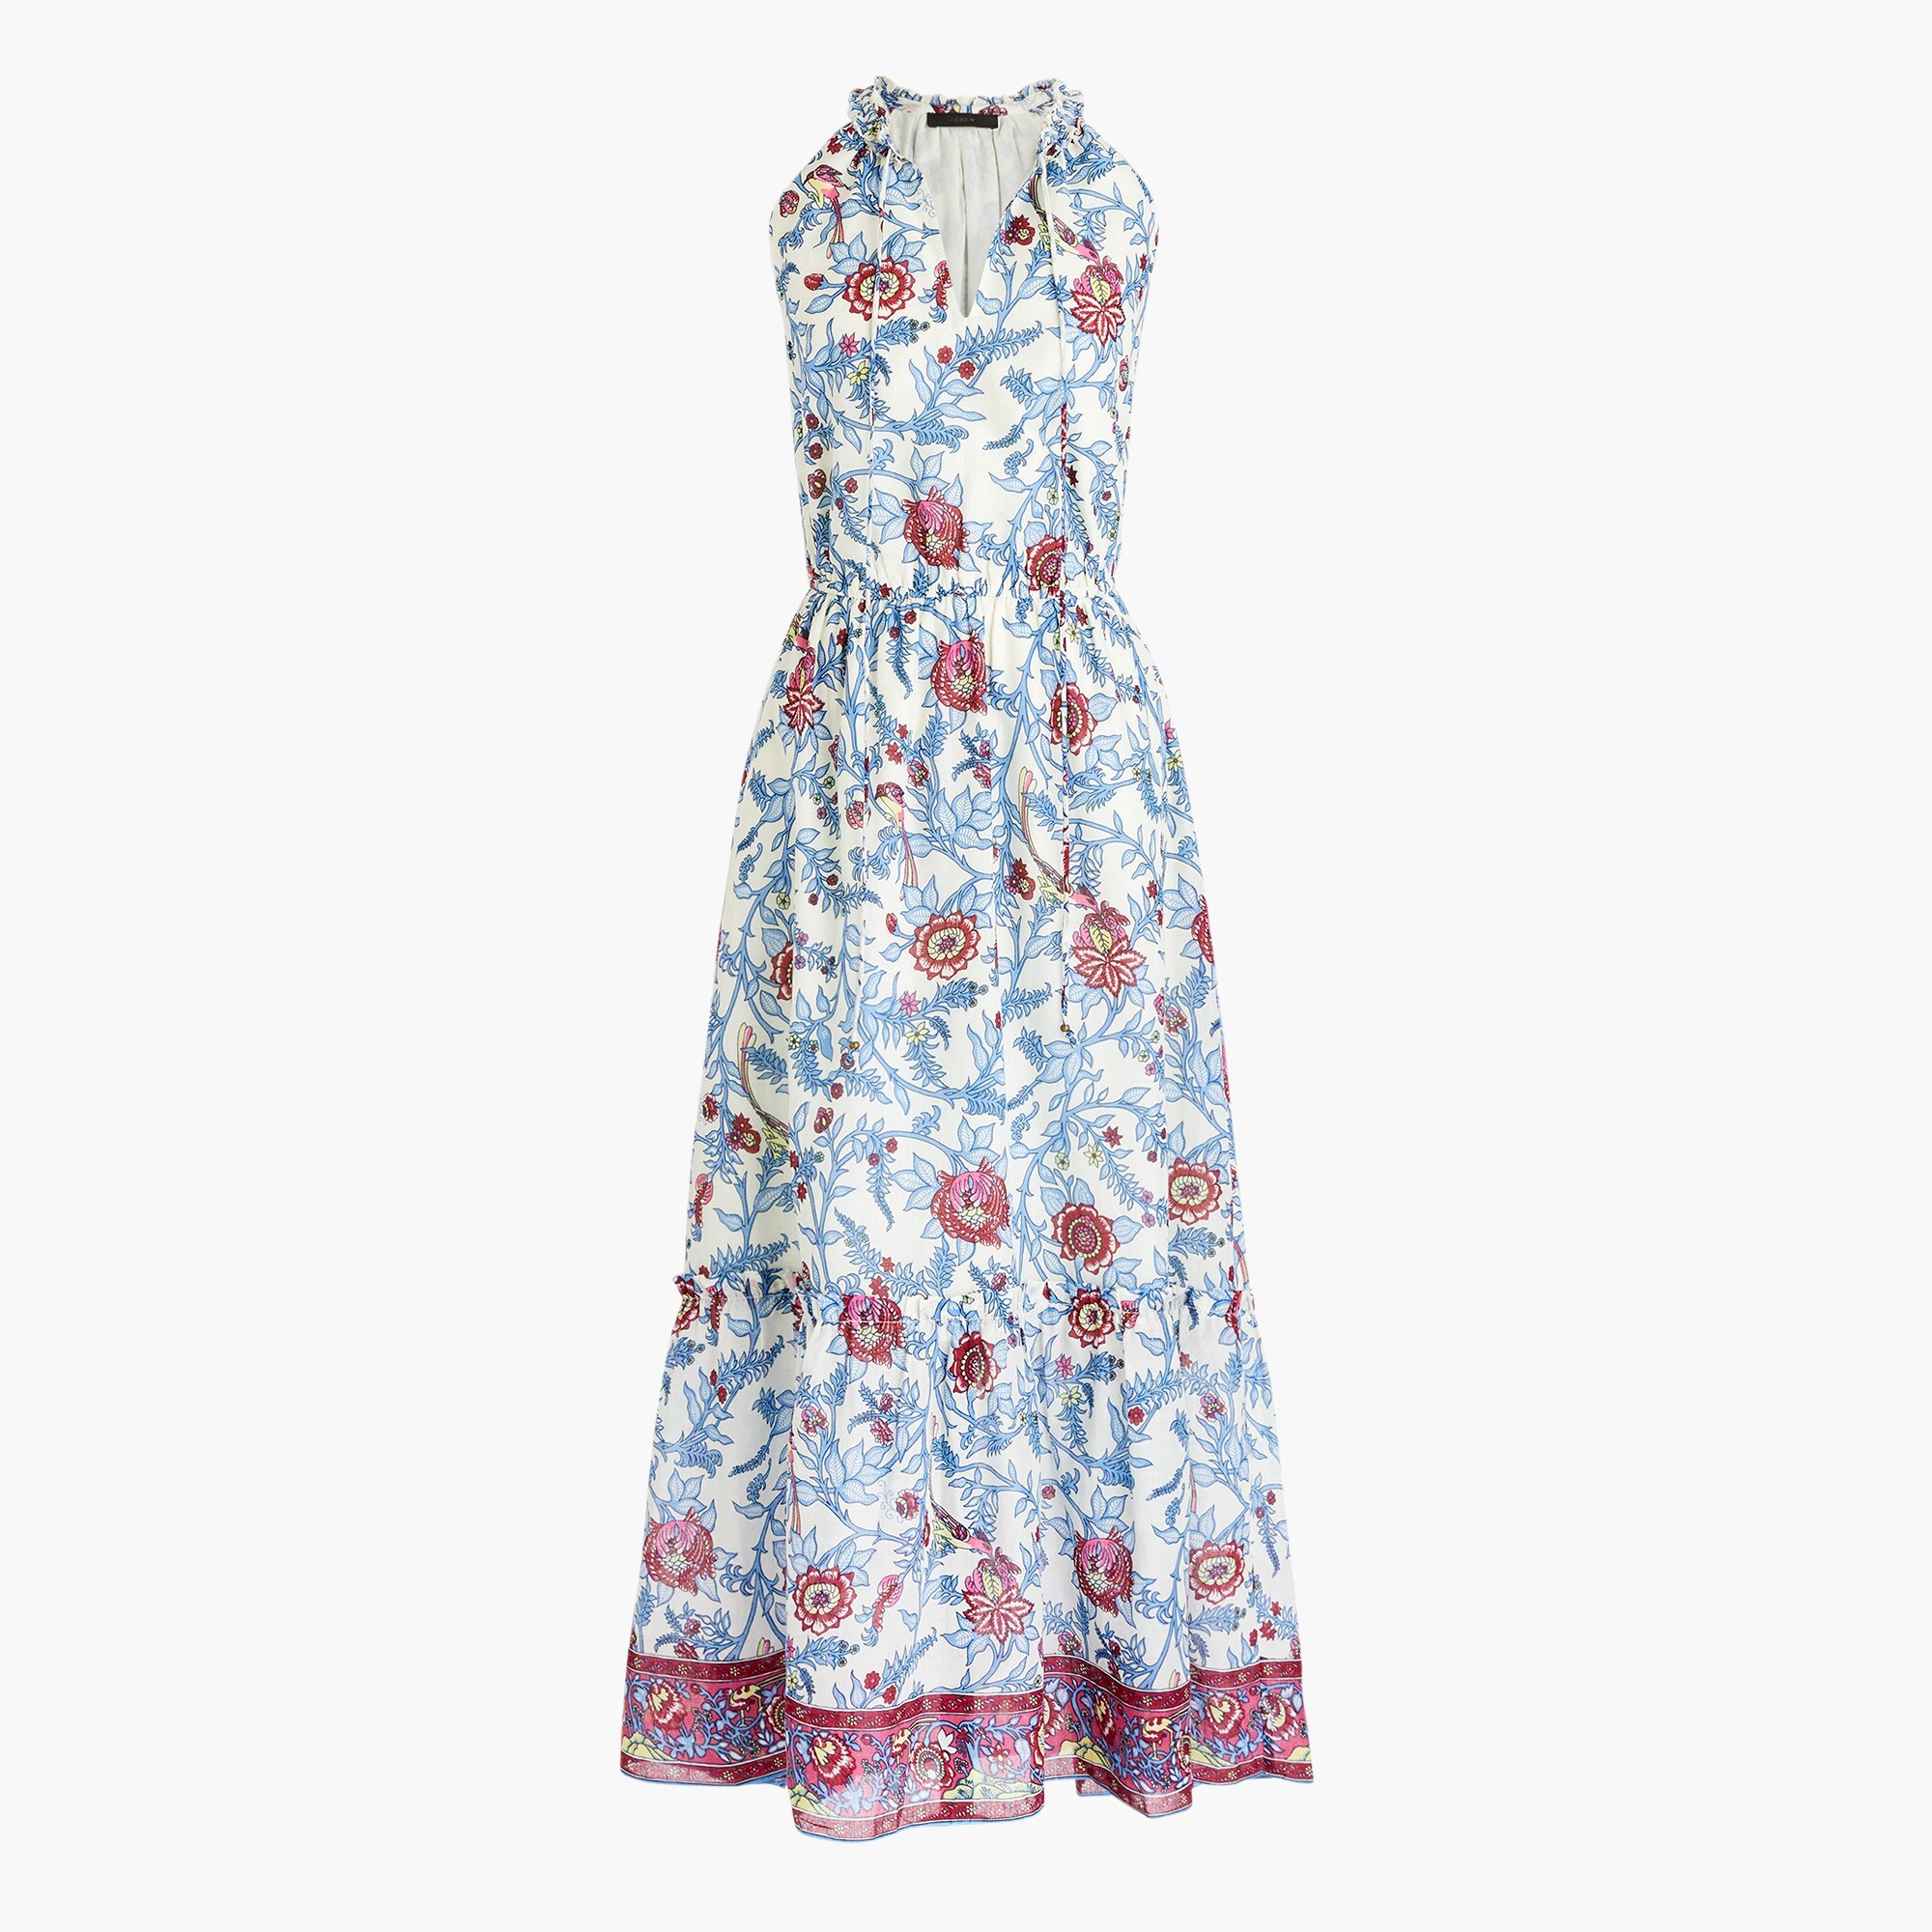 Image 1 for Point Sur ruffle-front block print maxi dress